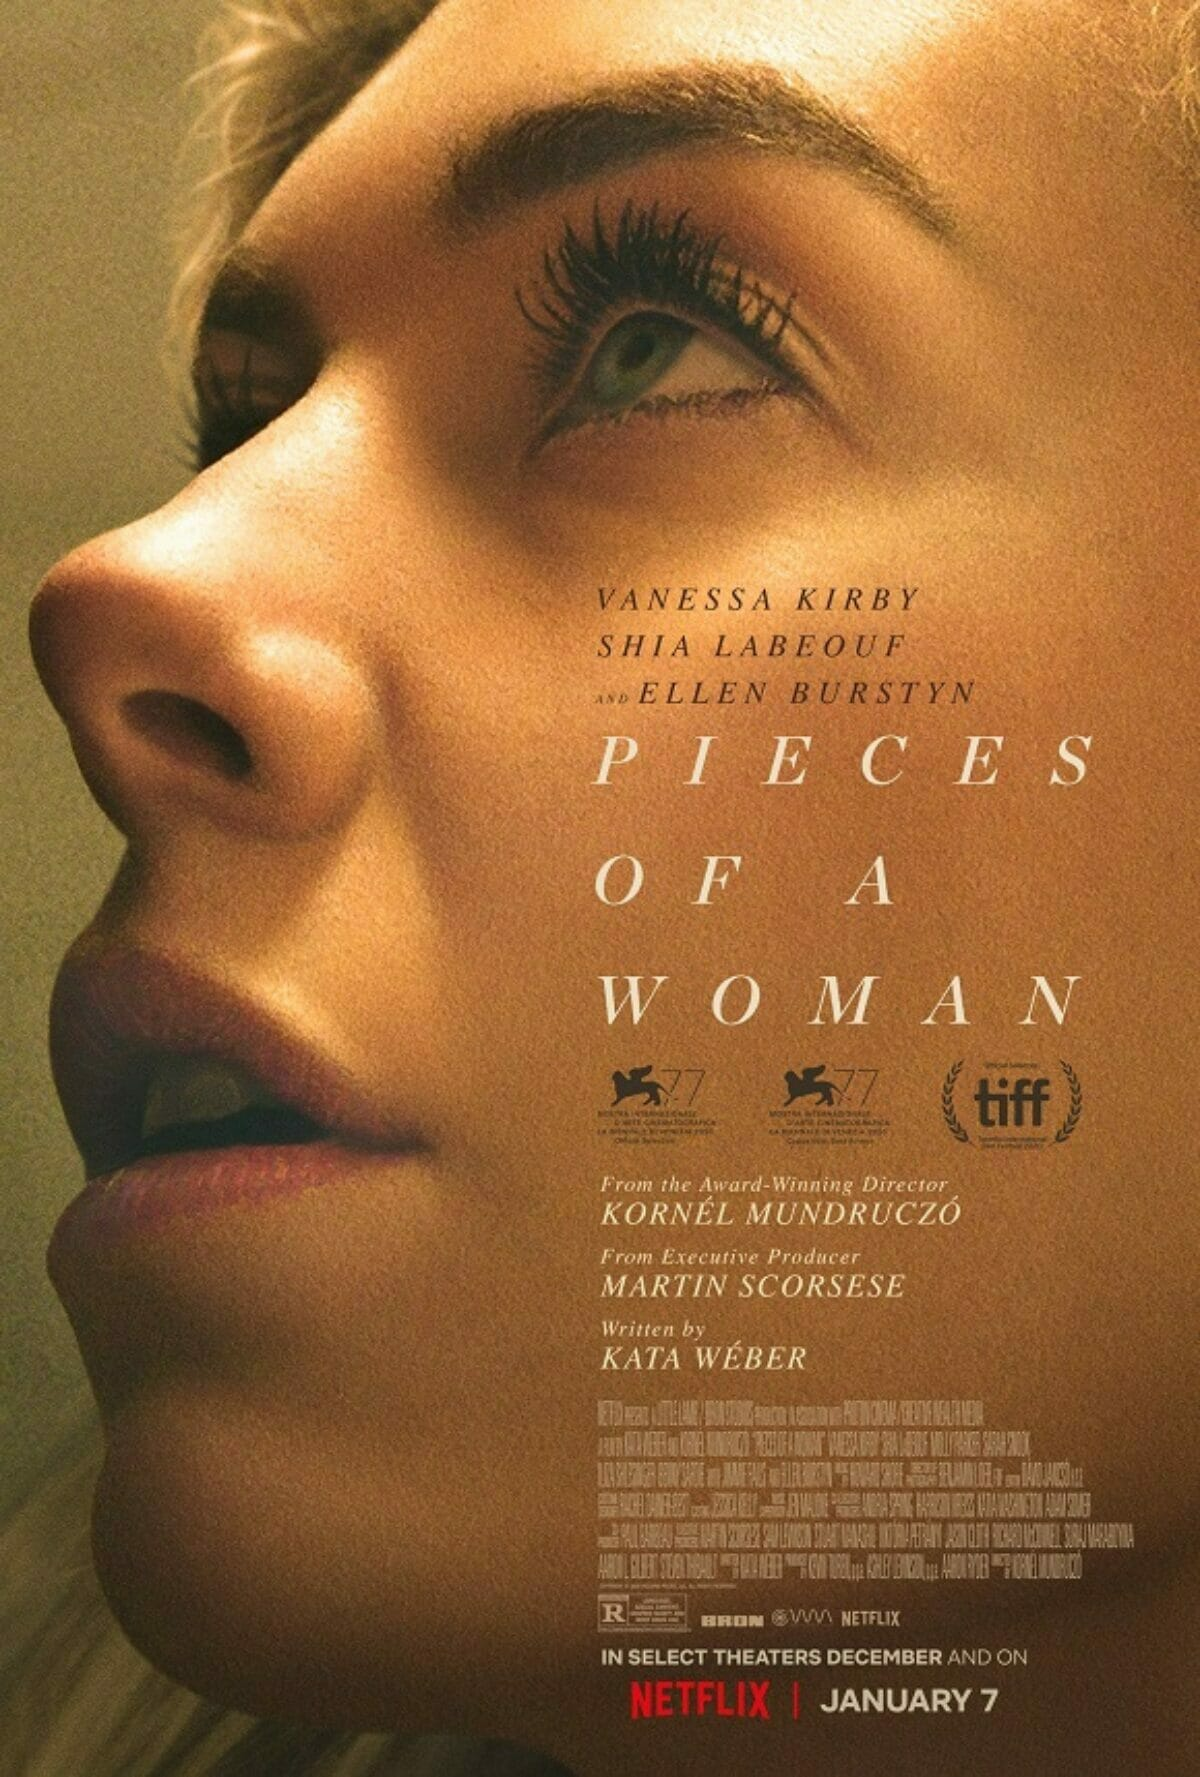 Pieces-of-a-woman-poster